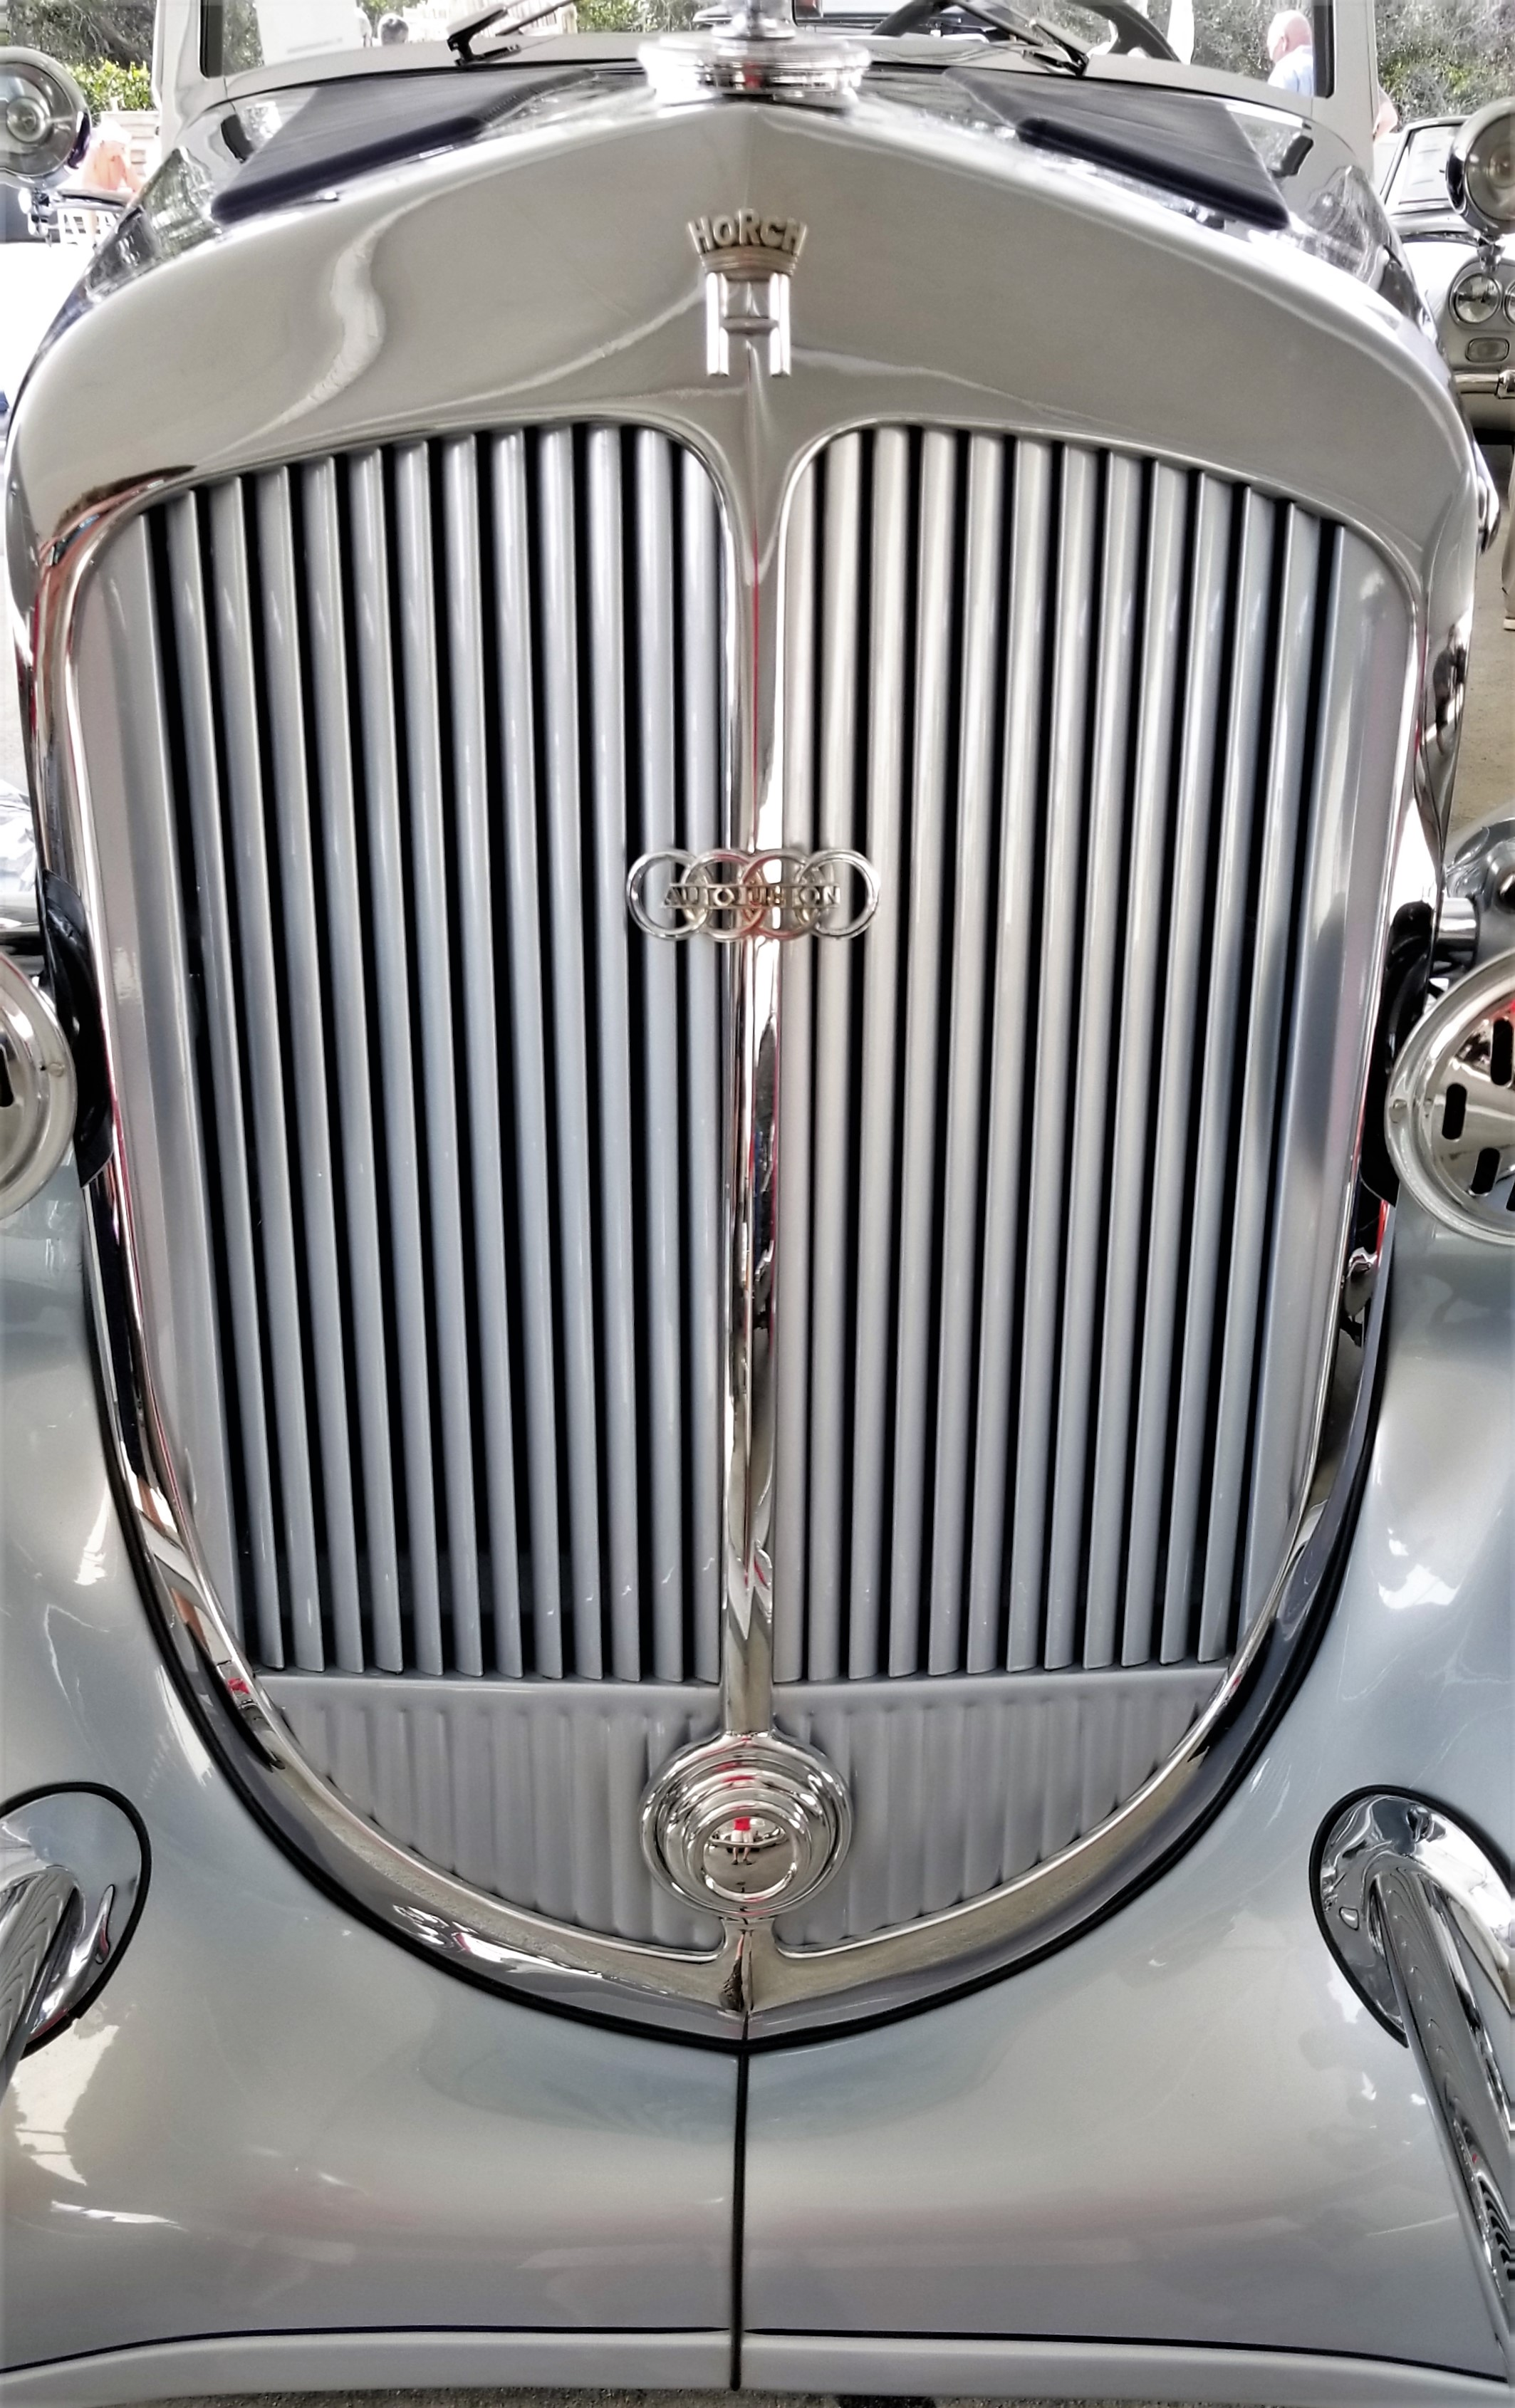 Horch grill